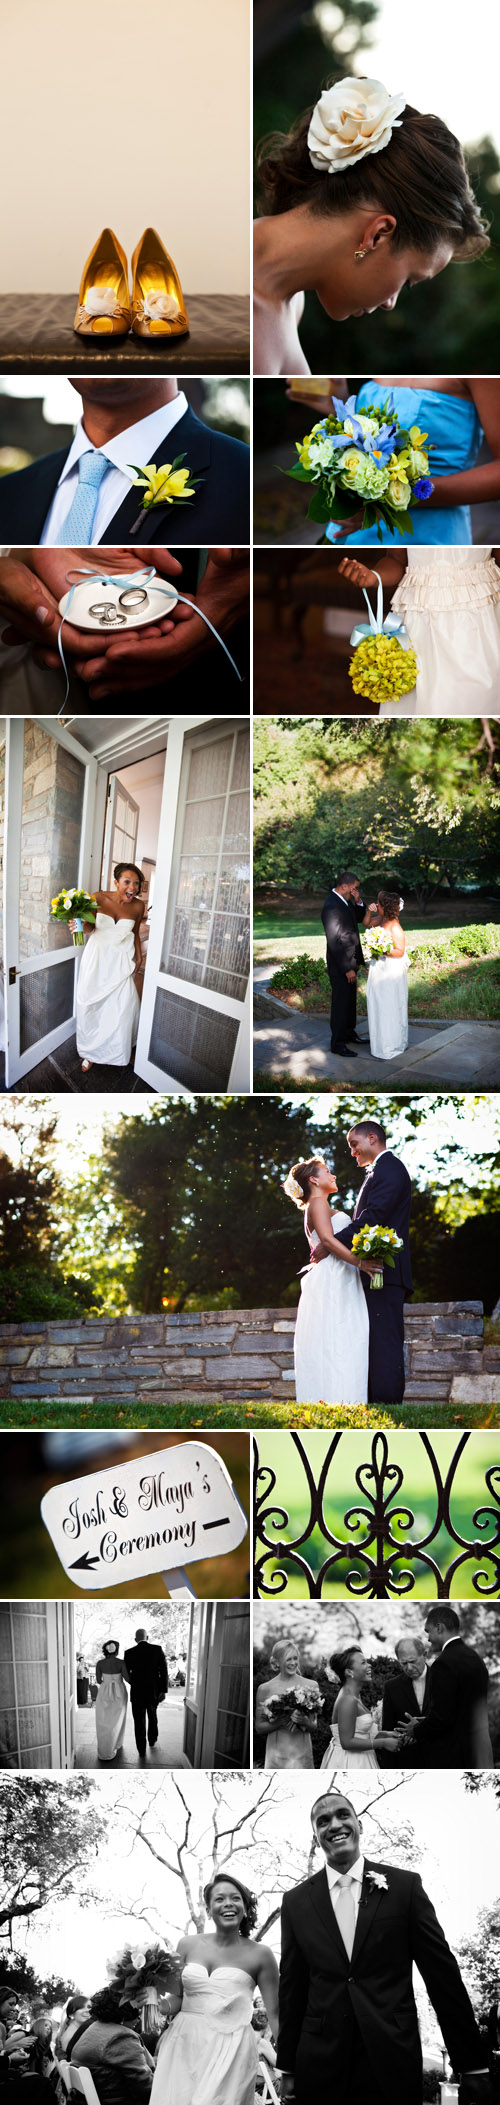 charming garden wedding in Rockville, MD, photography by Holland Photo Arts